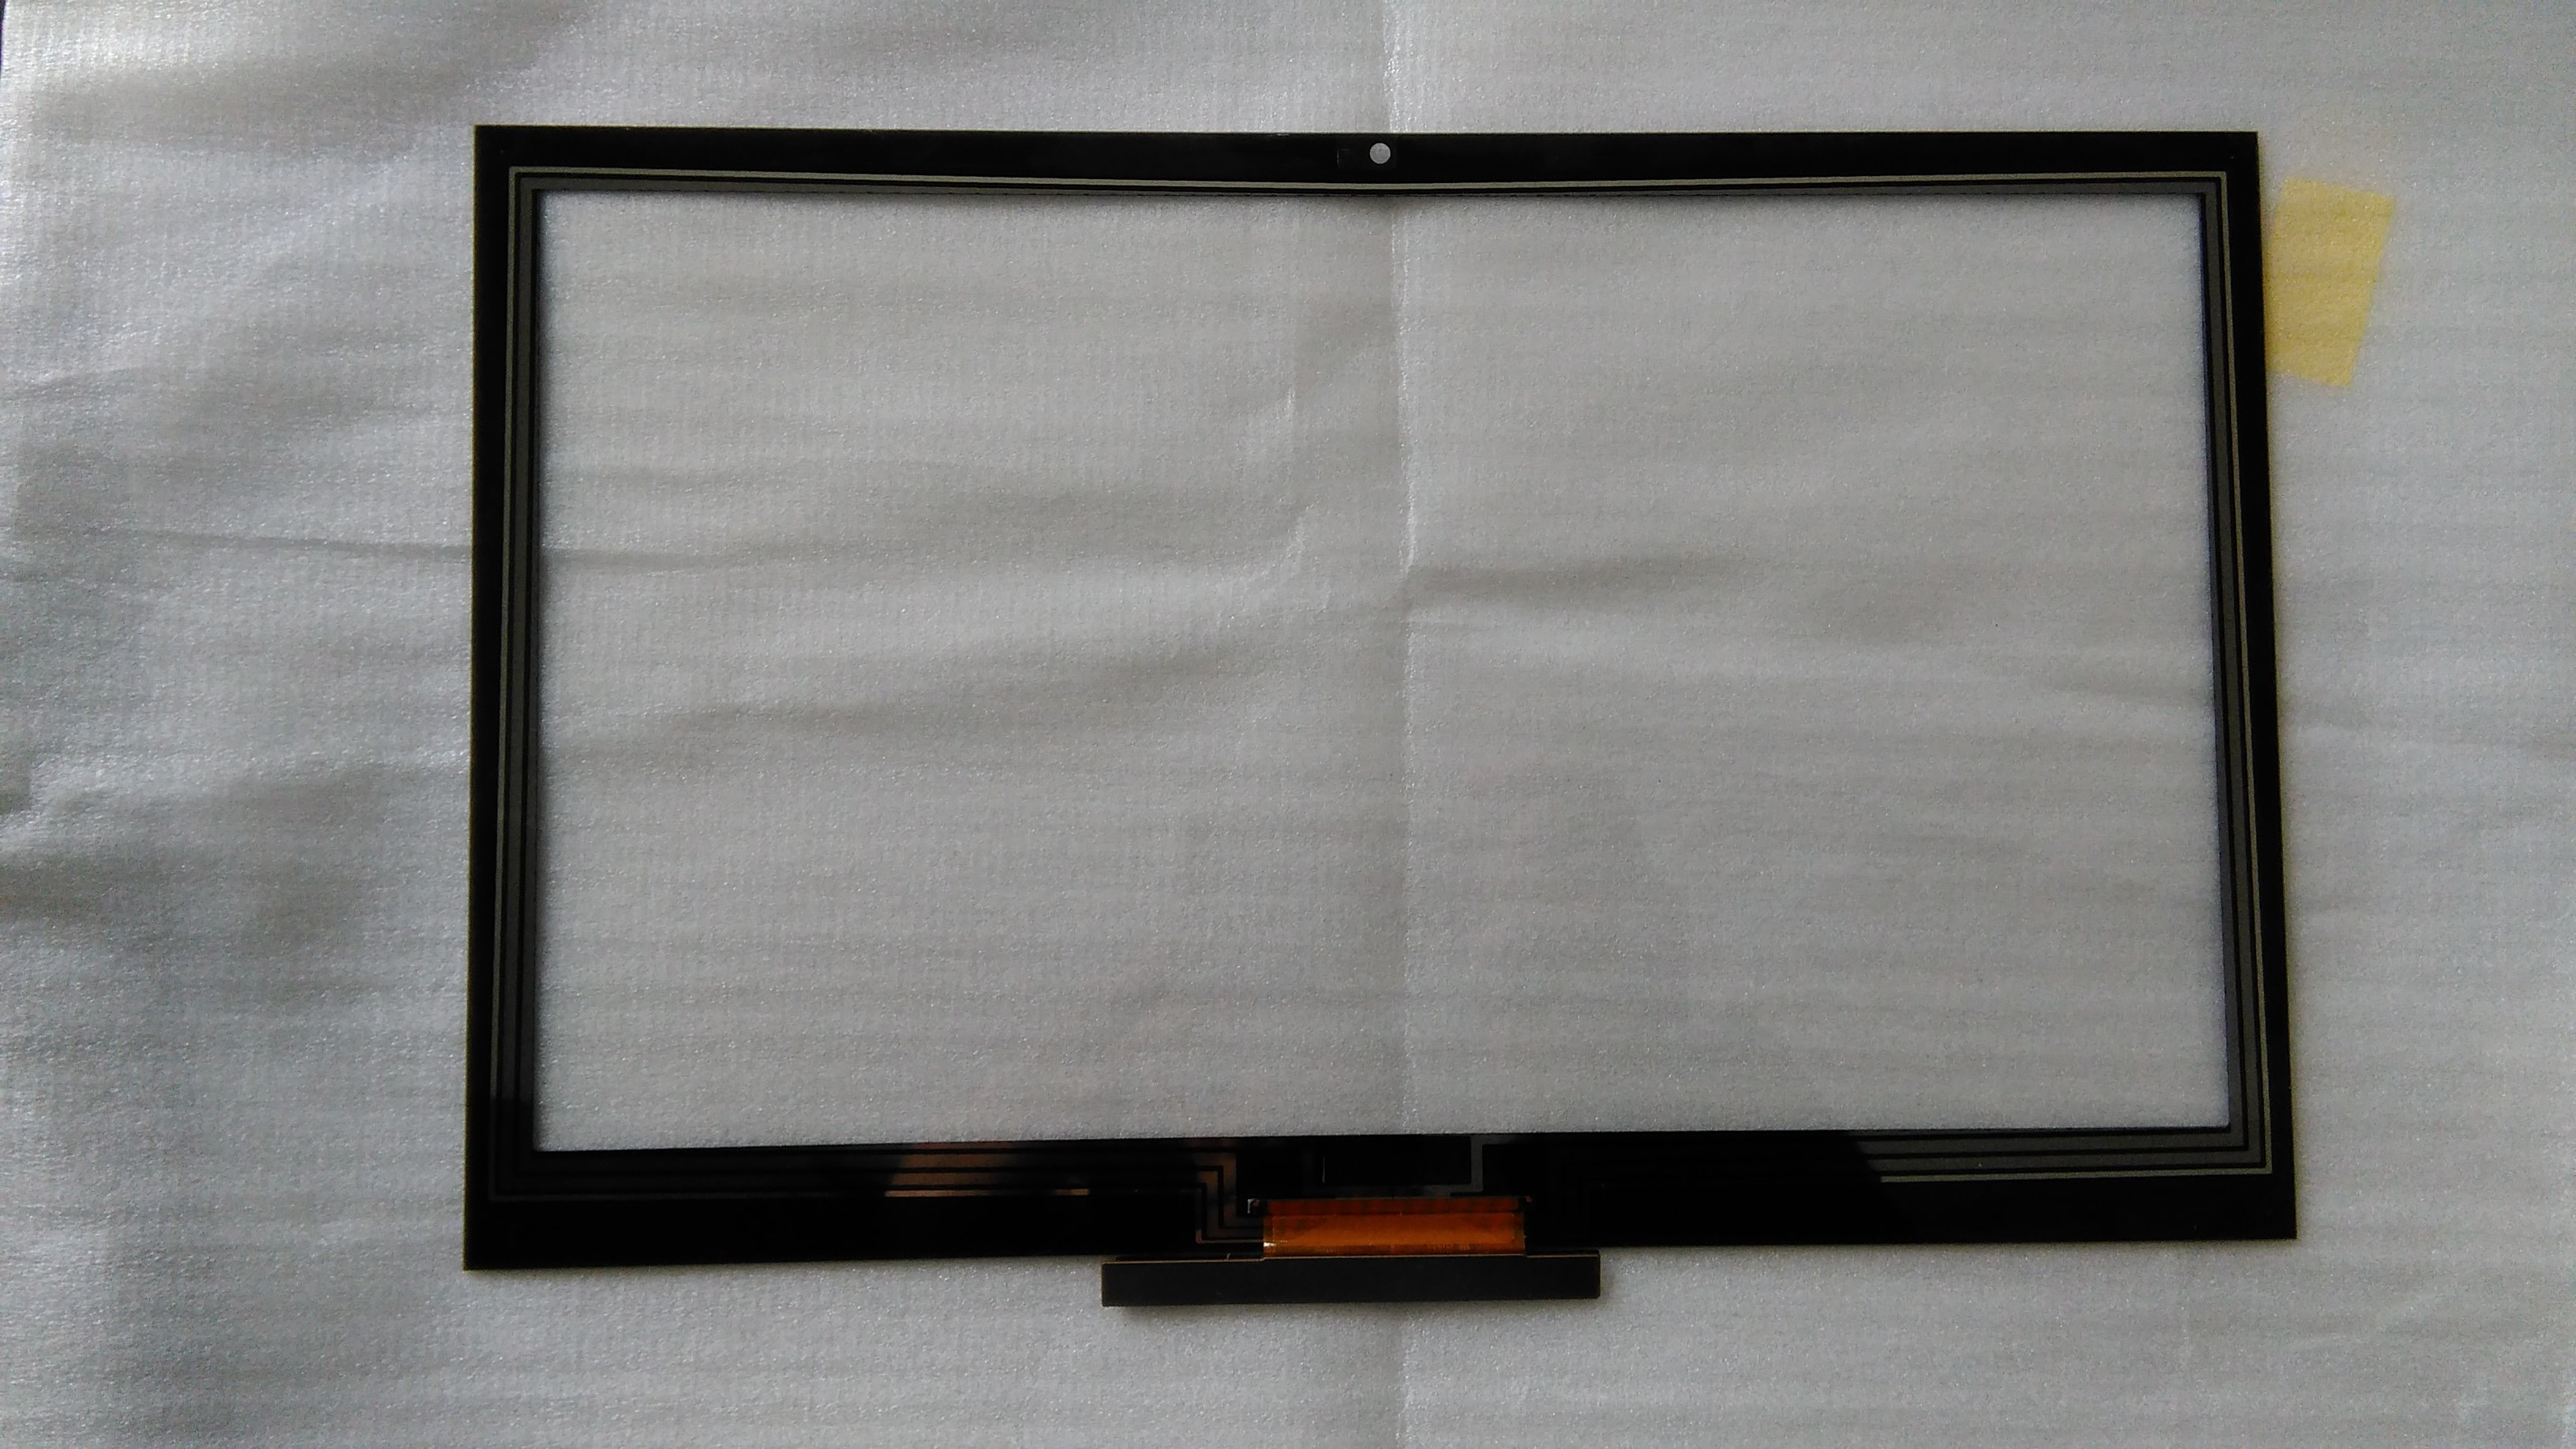 Laptop LCD Display Screen For SONY SVP13 SVP132 Touch Module Cover Assembly Black  digitizer glass WX13F009G101 1920*1080 replacement lcd digitizer capacitive touch screen for lg vs980 f320 d801 d803 black